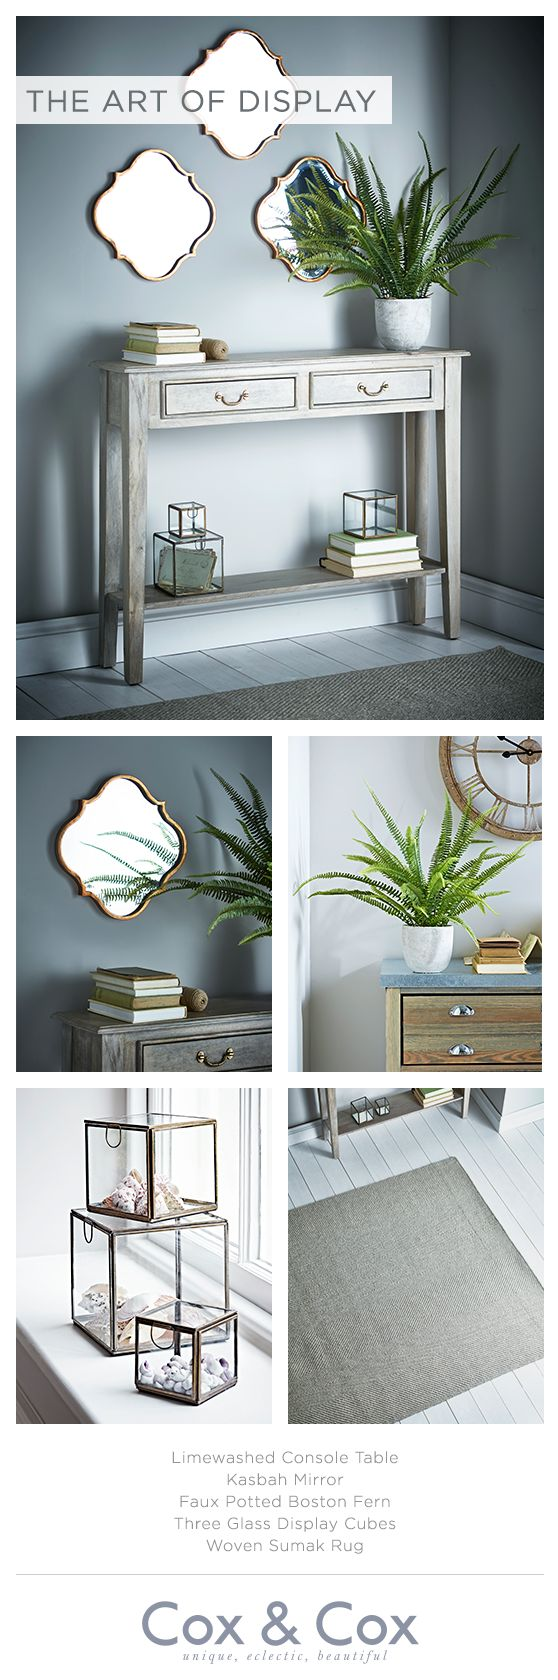 Create a fabulous display to add interest to your living space, with a slim console table, statement mirrors and delicate accessories.